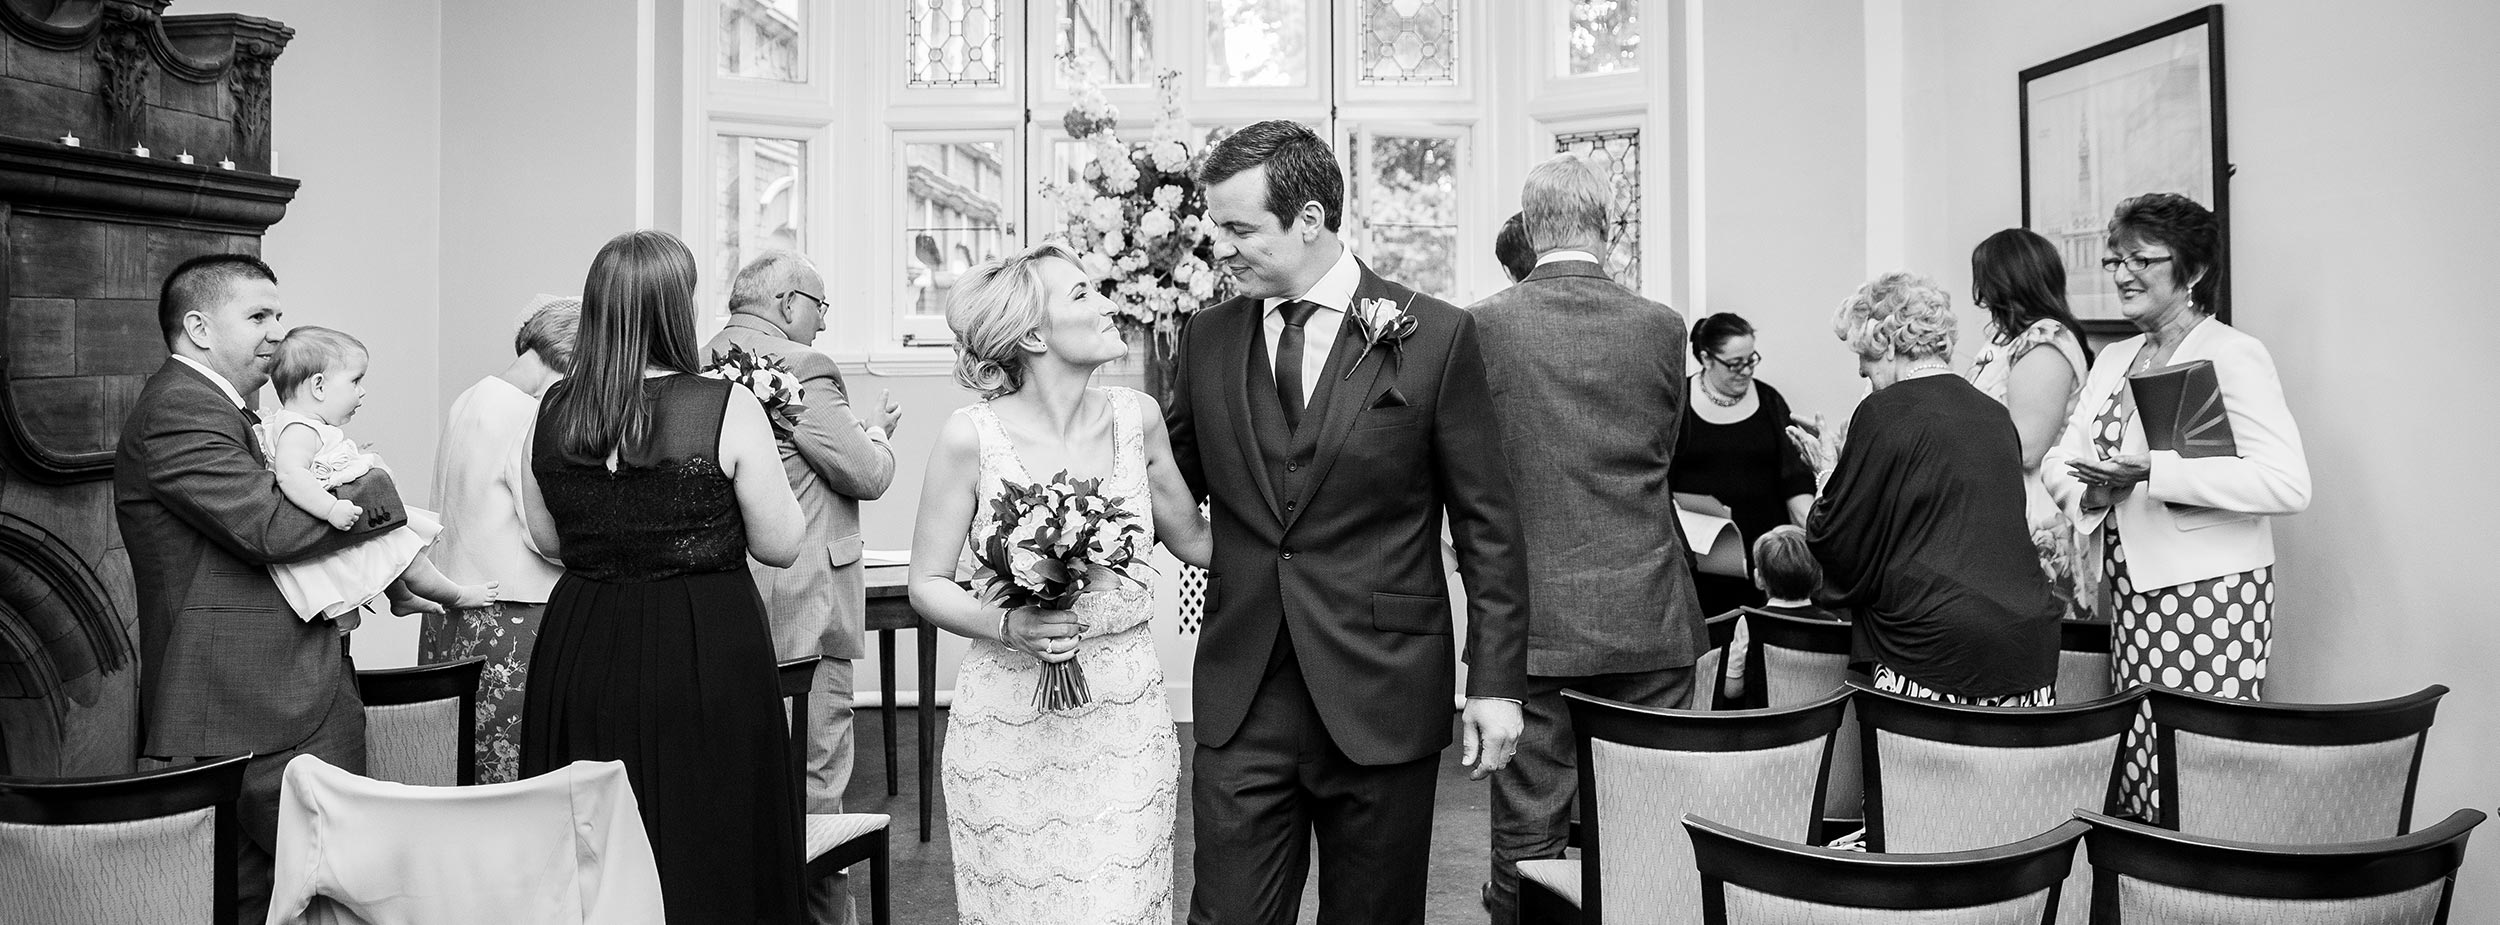 Mayfair Wedding Photographer London Westminster